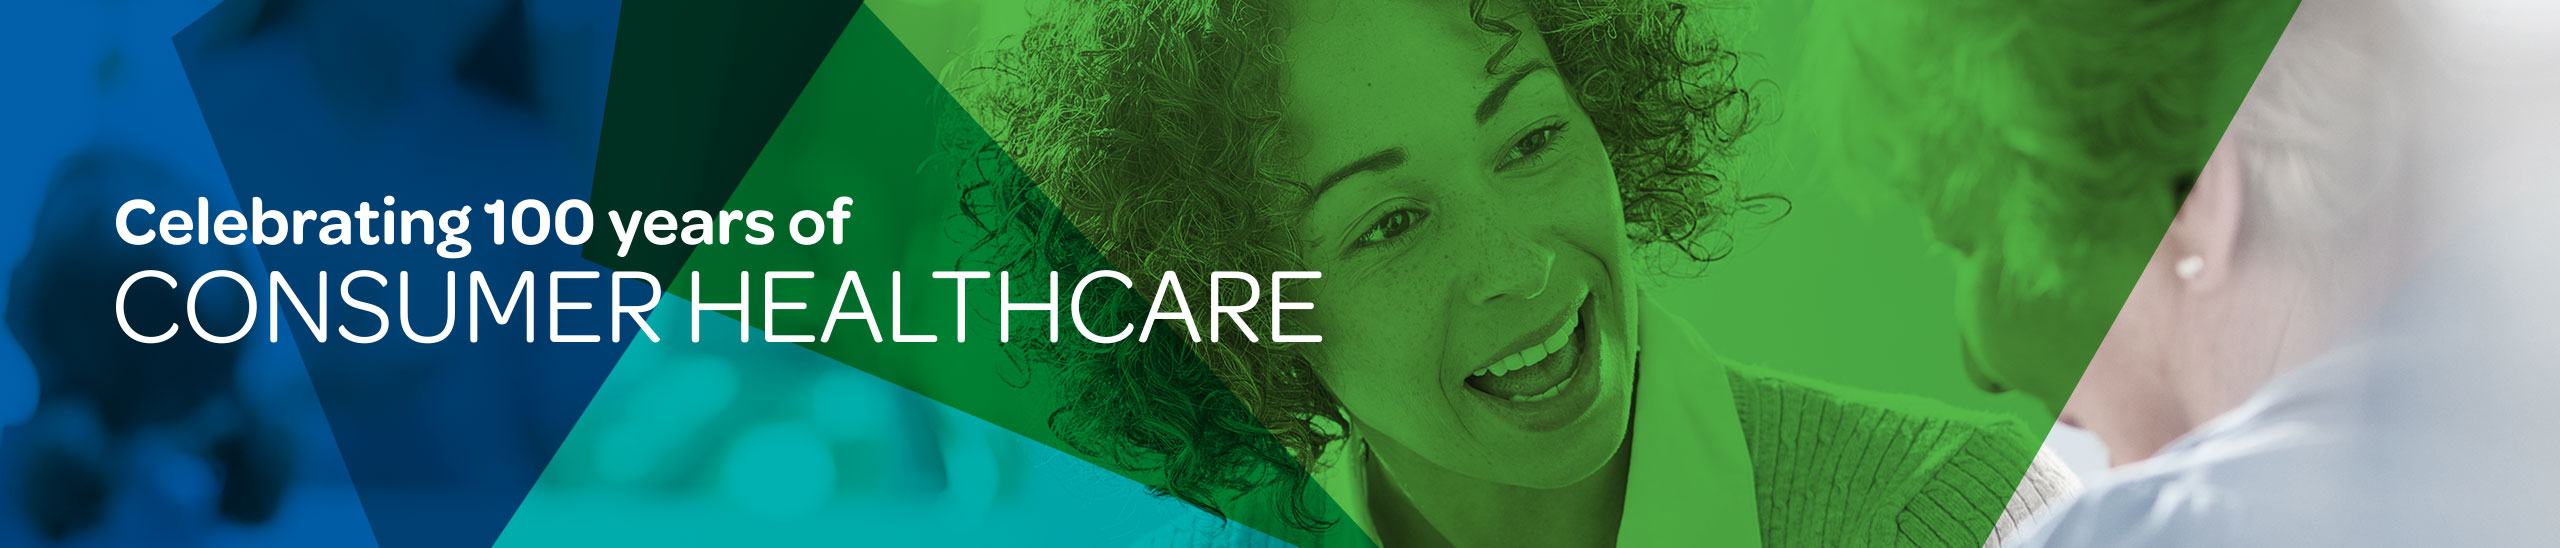 Celebrating 100 years of consumer healthcare spotlight header image